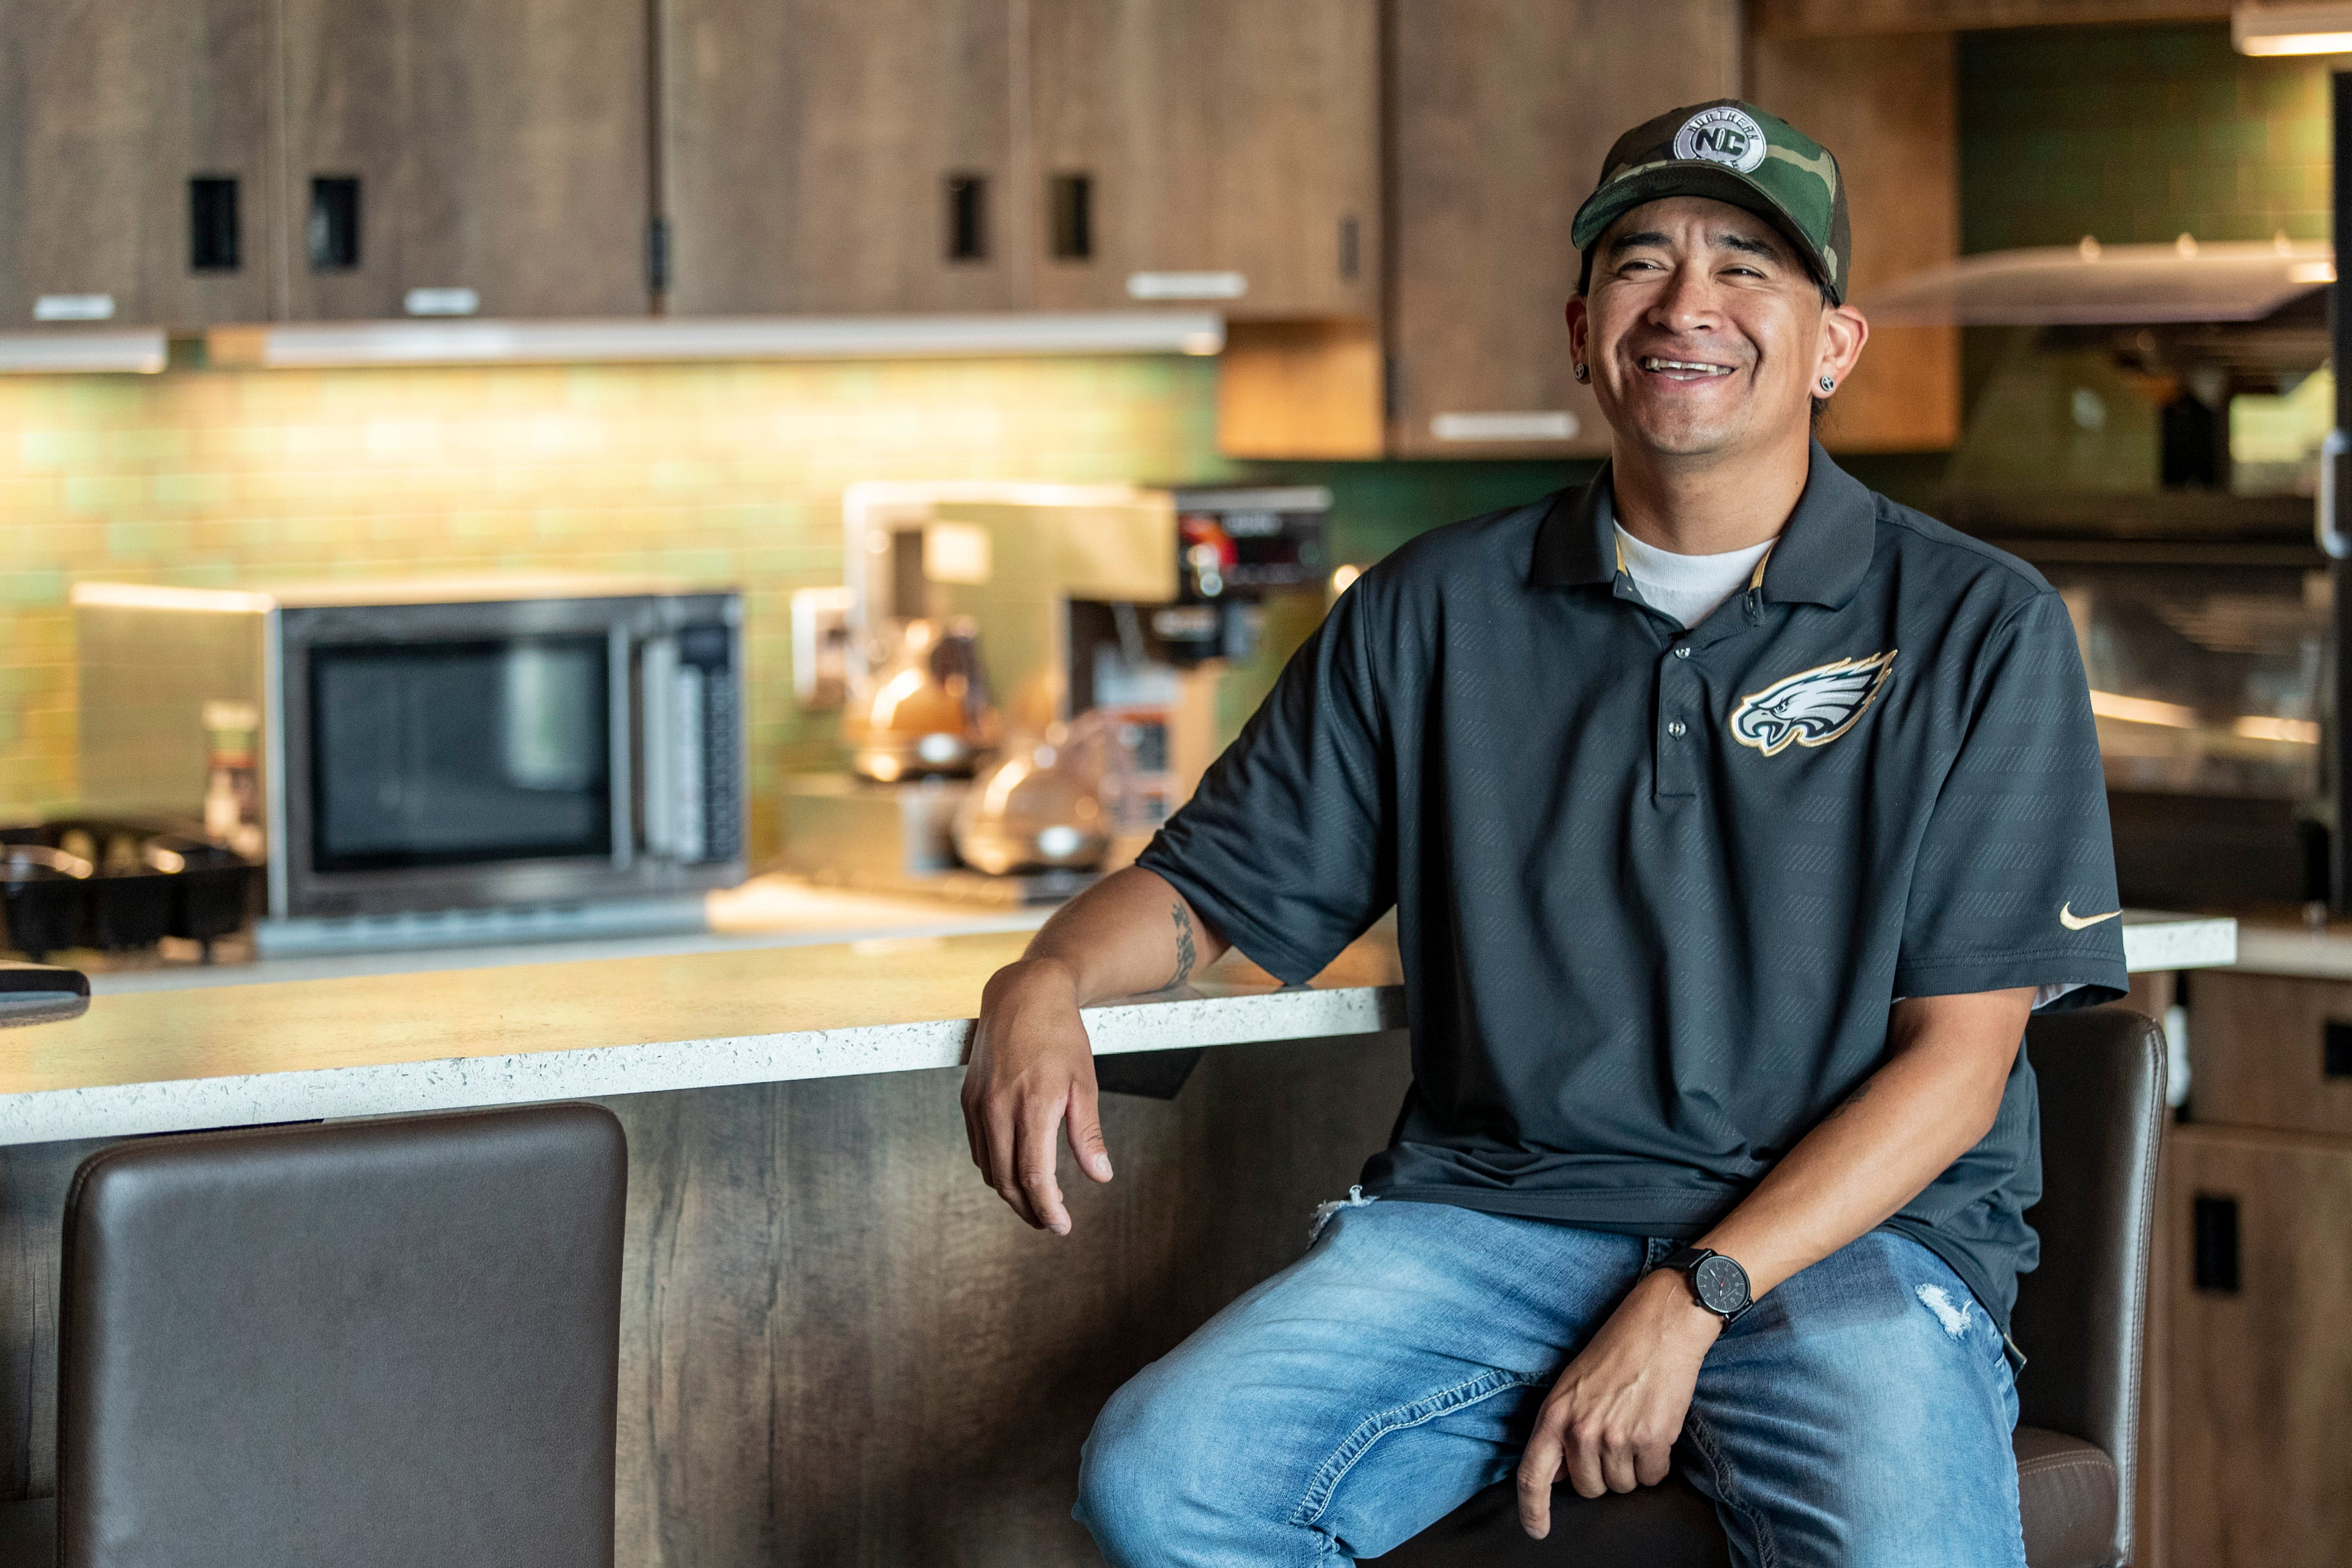 """Jazz nearly died twice from overdoses. Now, he is sober and is helping other Native Americans as the cultural specialist at the Bismarck recovery center. """"It's just giving back. I recently lost a family member around Christmas to fentanyl. The drug abuse here is spreading fast."""""""